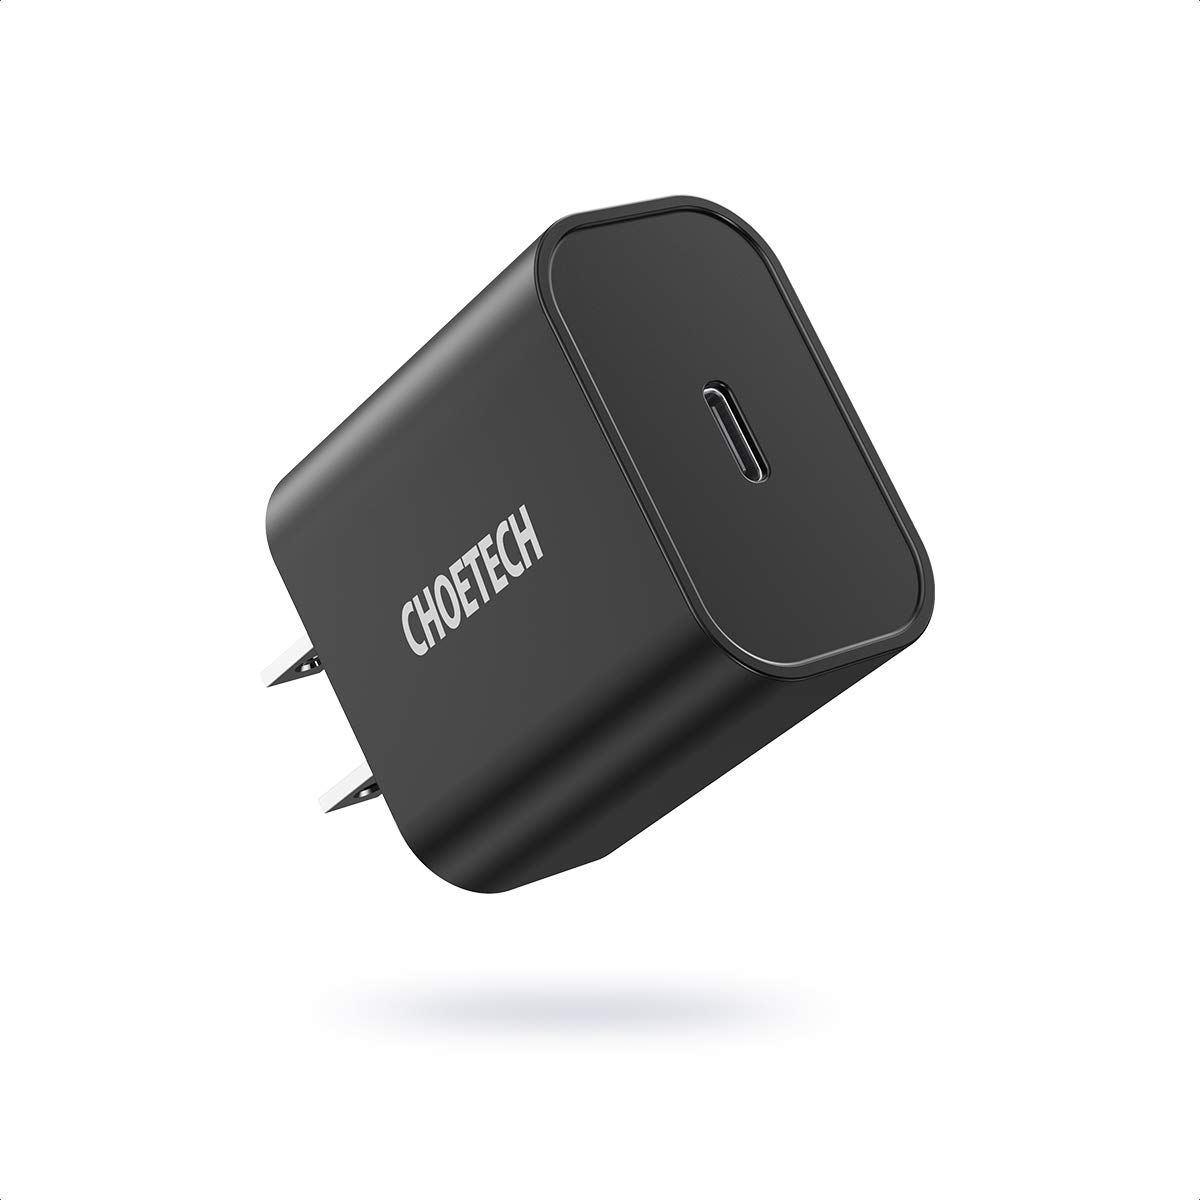 CHOETECH USB C Charger, 18W Power Delivery Type C Wall Charger USB-C Power Adapter Compatible iPhone SE, iPhone 11/11 Pro/11 Pro Max/X/XS/XS Max/XR,iPad Pro,Galaxy Note 10/Note 9,Google Pixel 3/3 XL